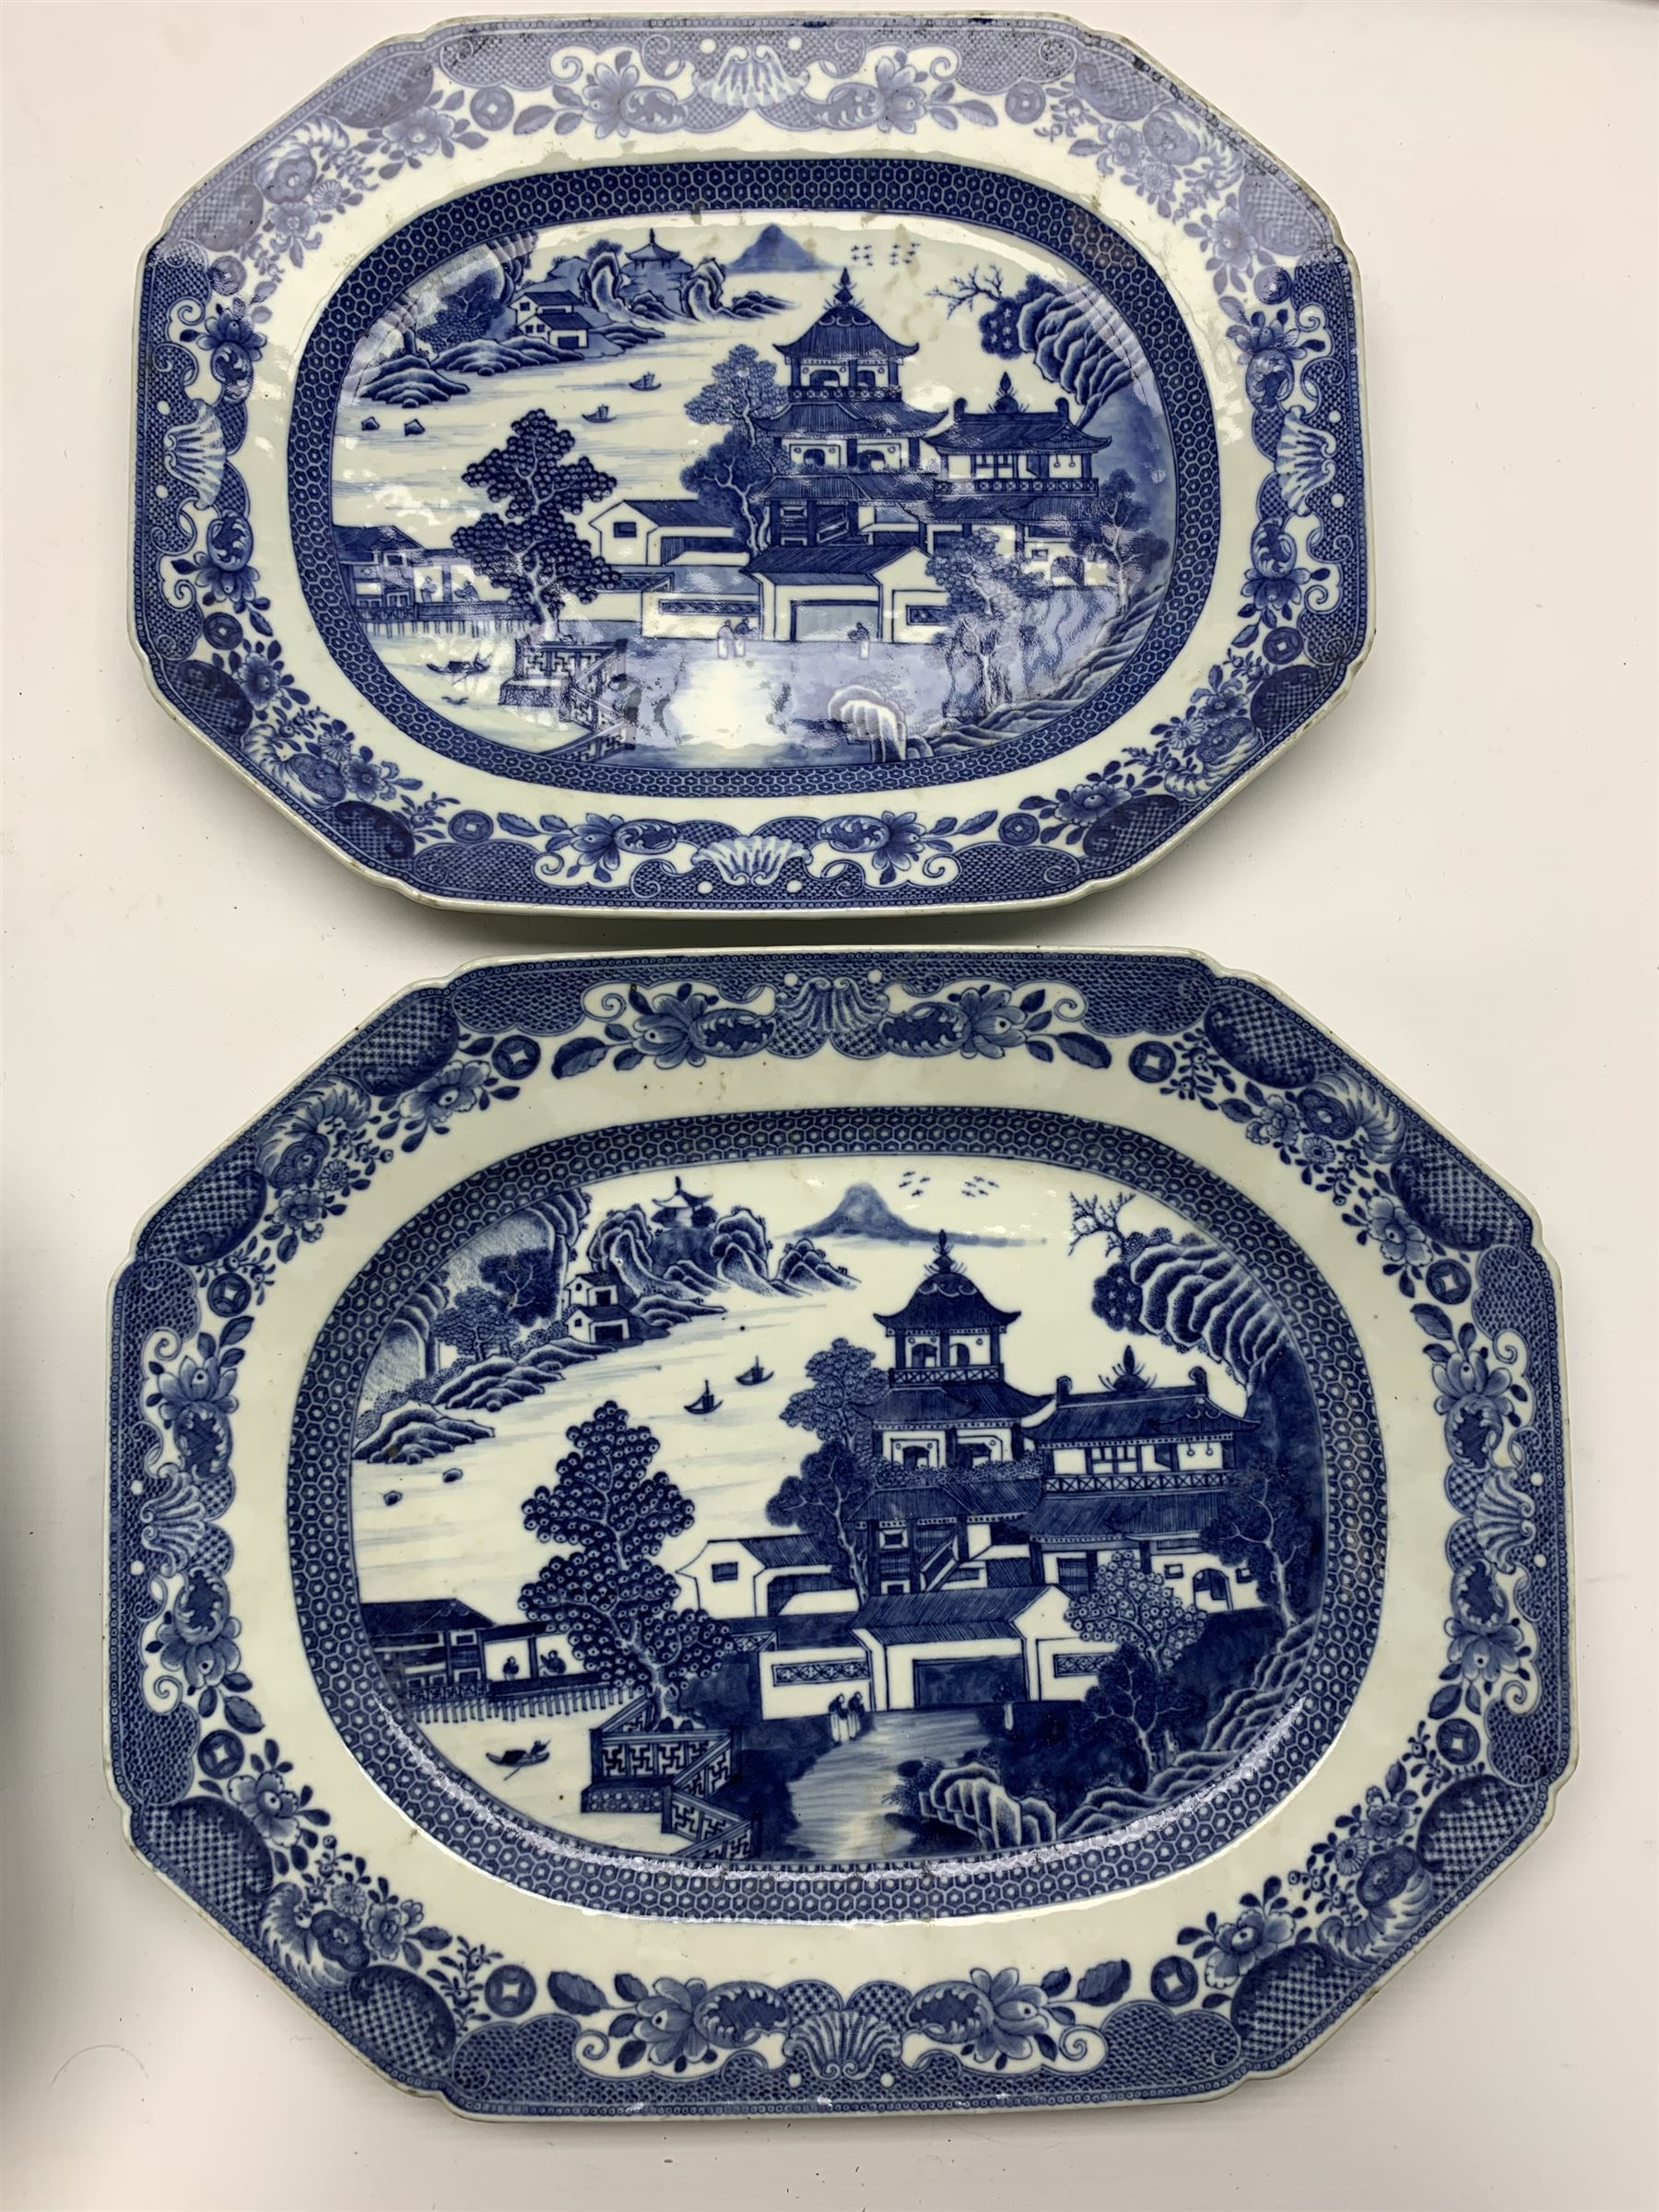 Late 18th/early 19th century Chinese export blue and white forty seven piece part dinner service - Image 9 of 20